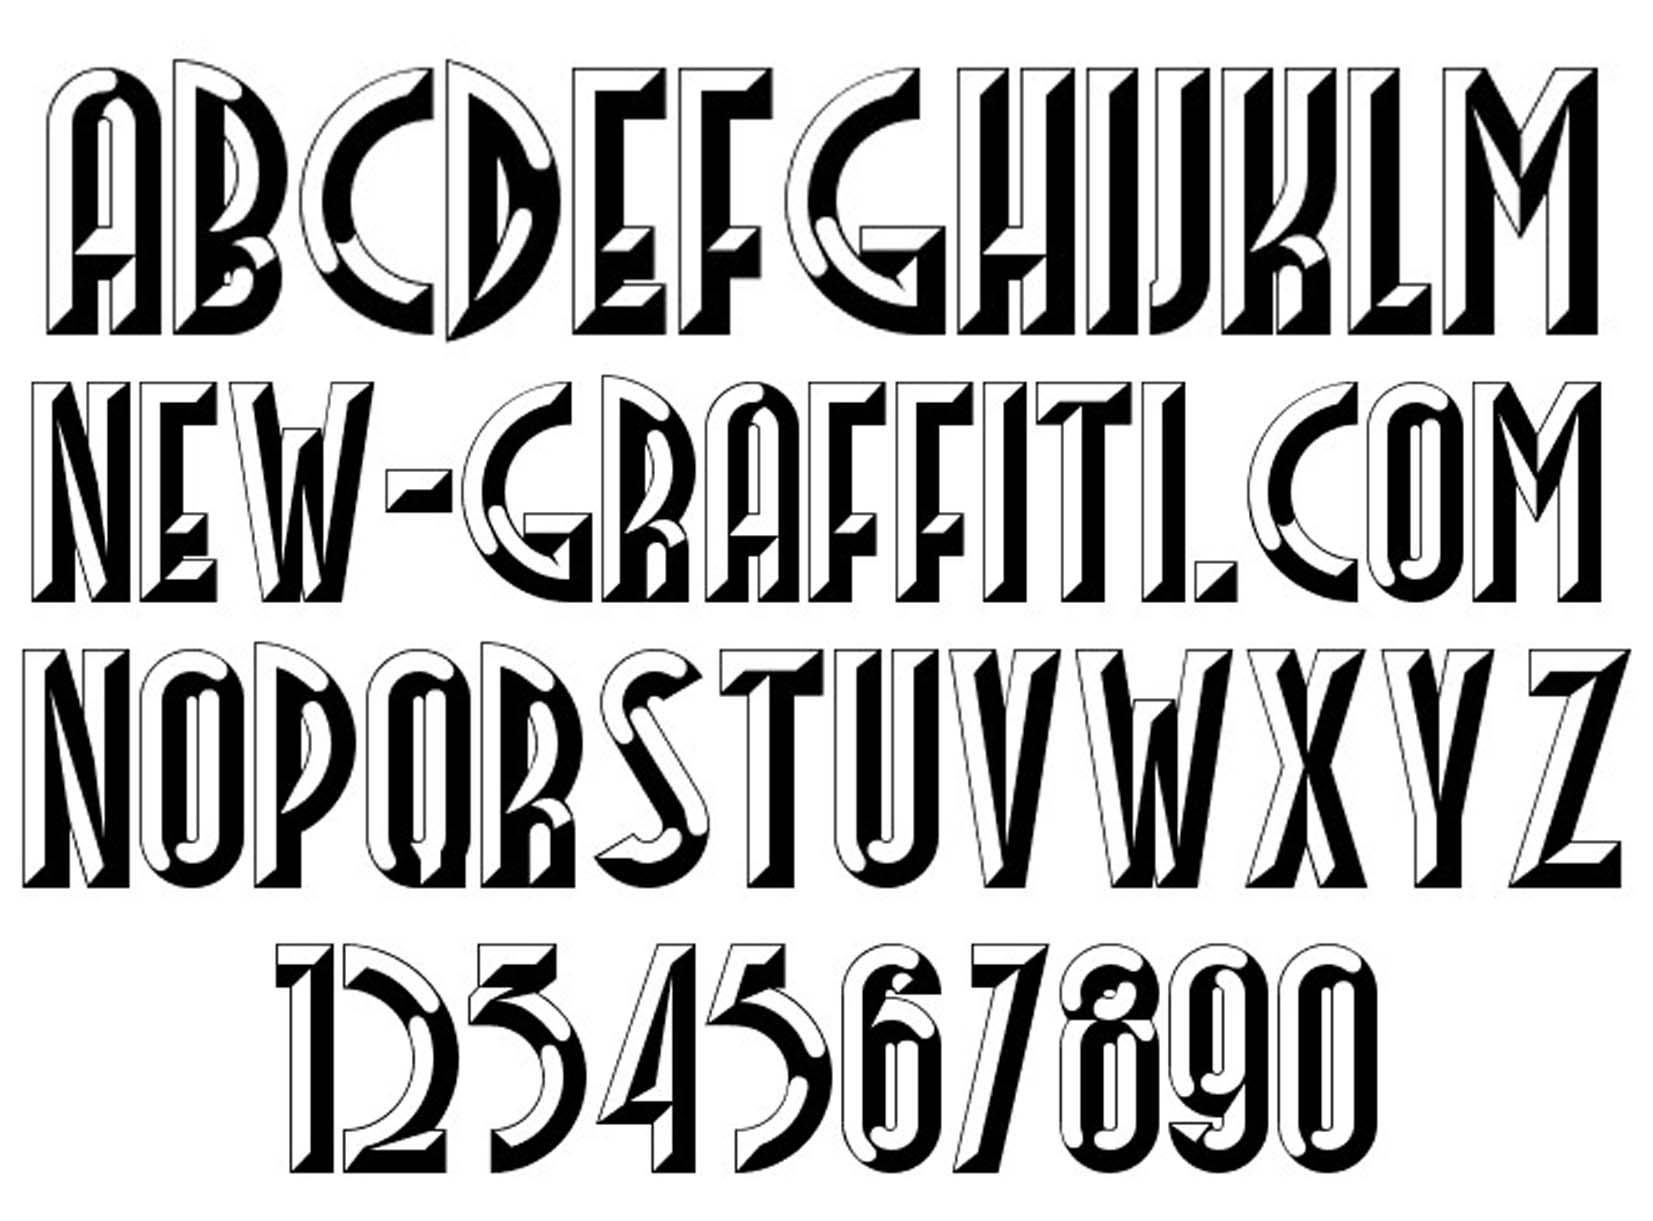 14 3D Number Fonts Images - Cool Number Fonts 3D, 3D ...